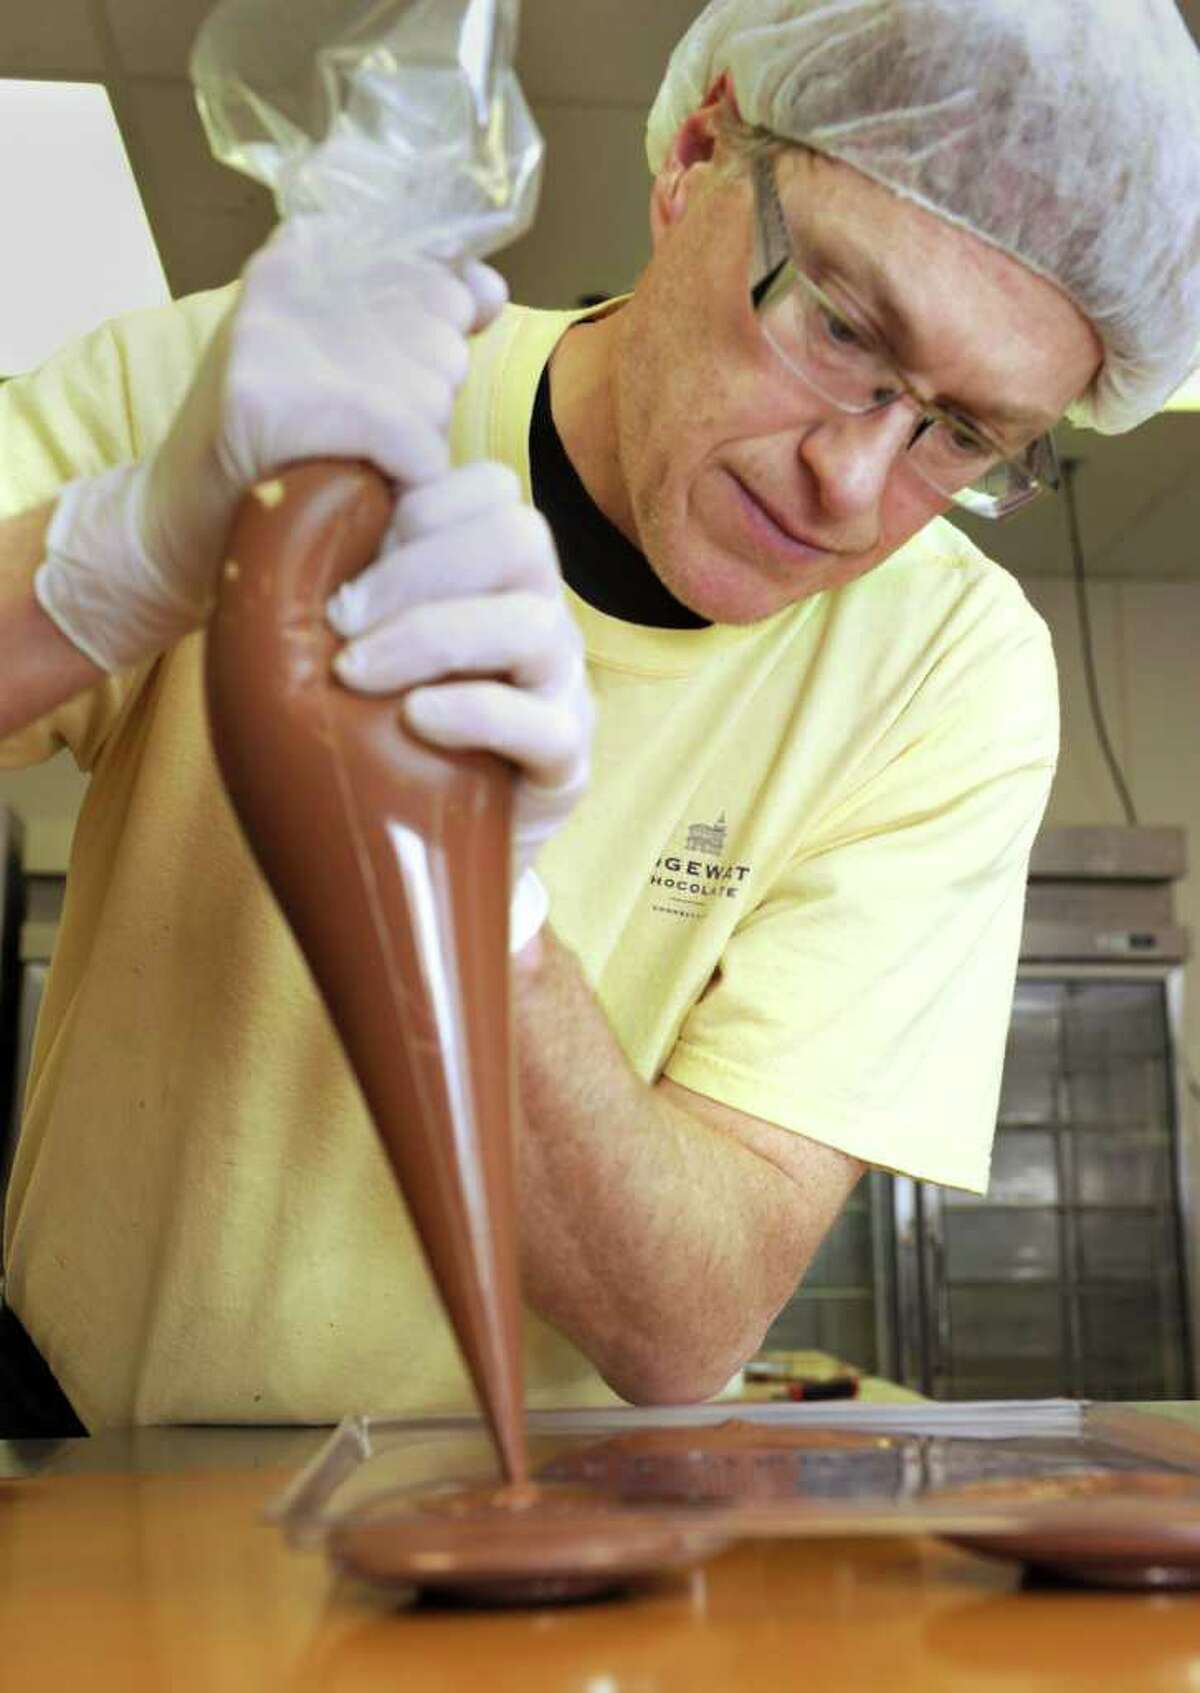 Erik Langegren, founder and co-owner of Bridgewater Chocolates, fills heart molds with chocolate Thursday, February 10, 2011